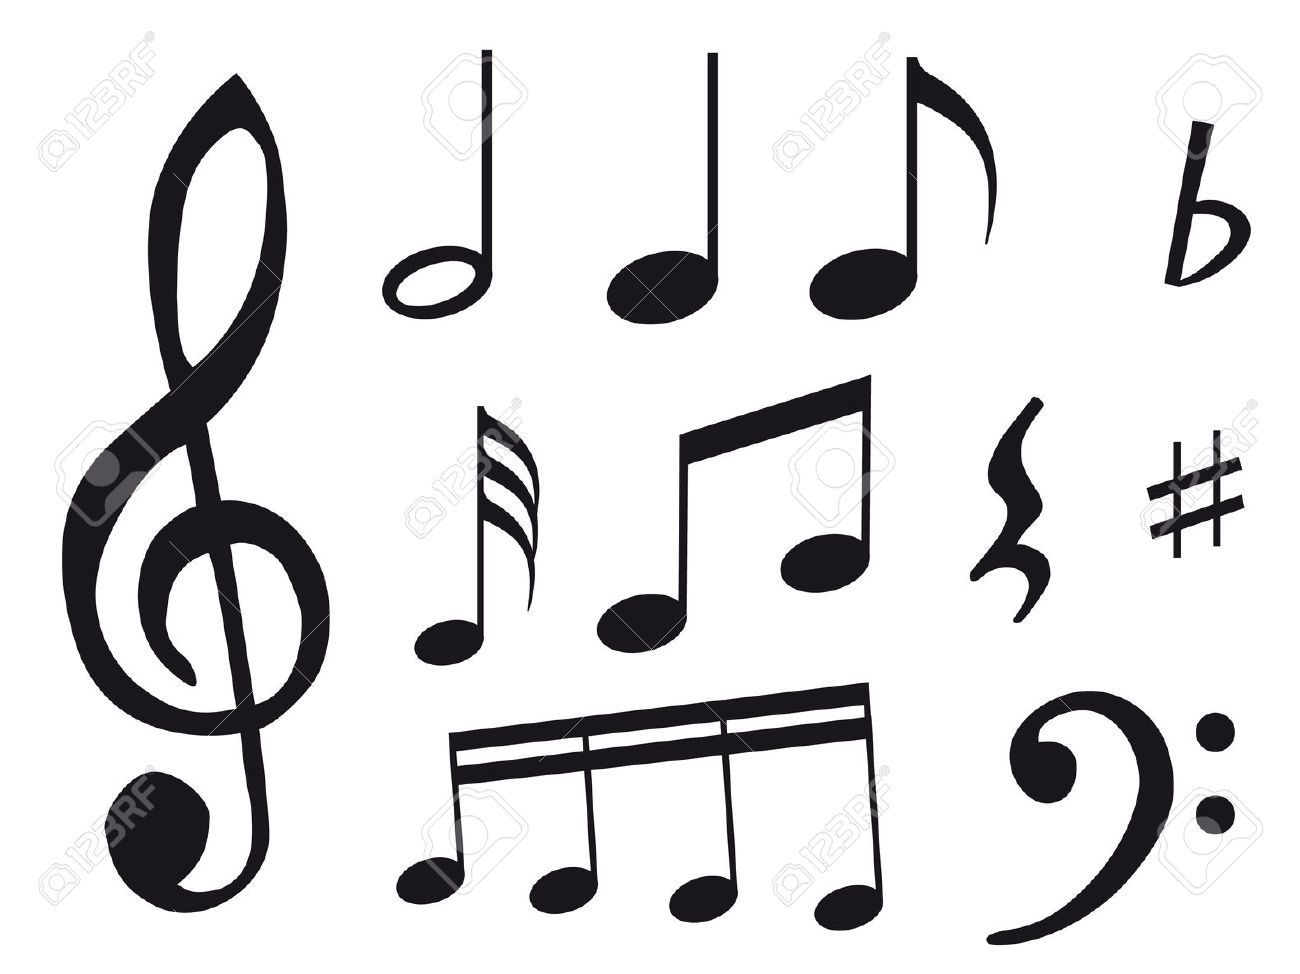 Different kind of music notes as symbol of sheet music royalty different kind of music notes as symbol of sheet music royalty biocorpaavc Image collections